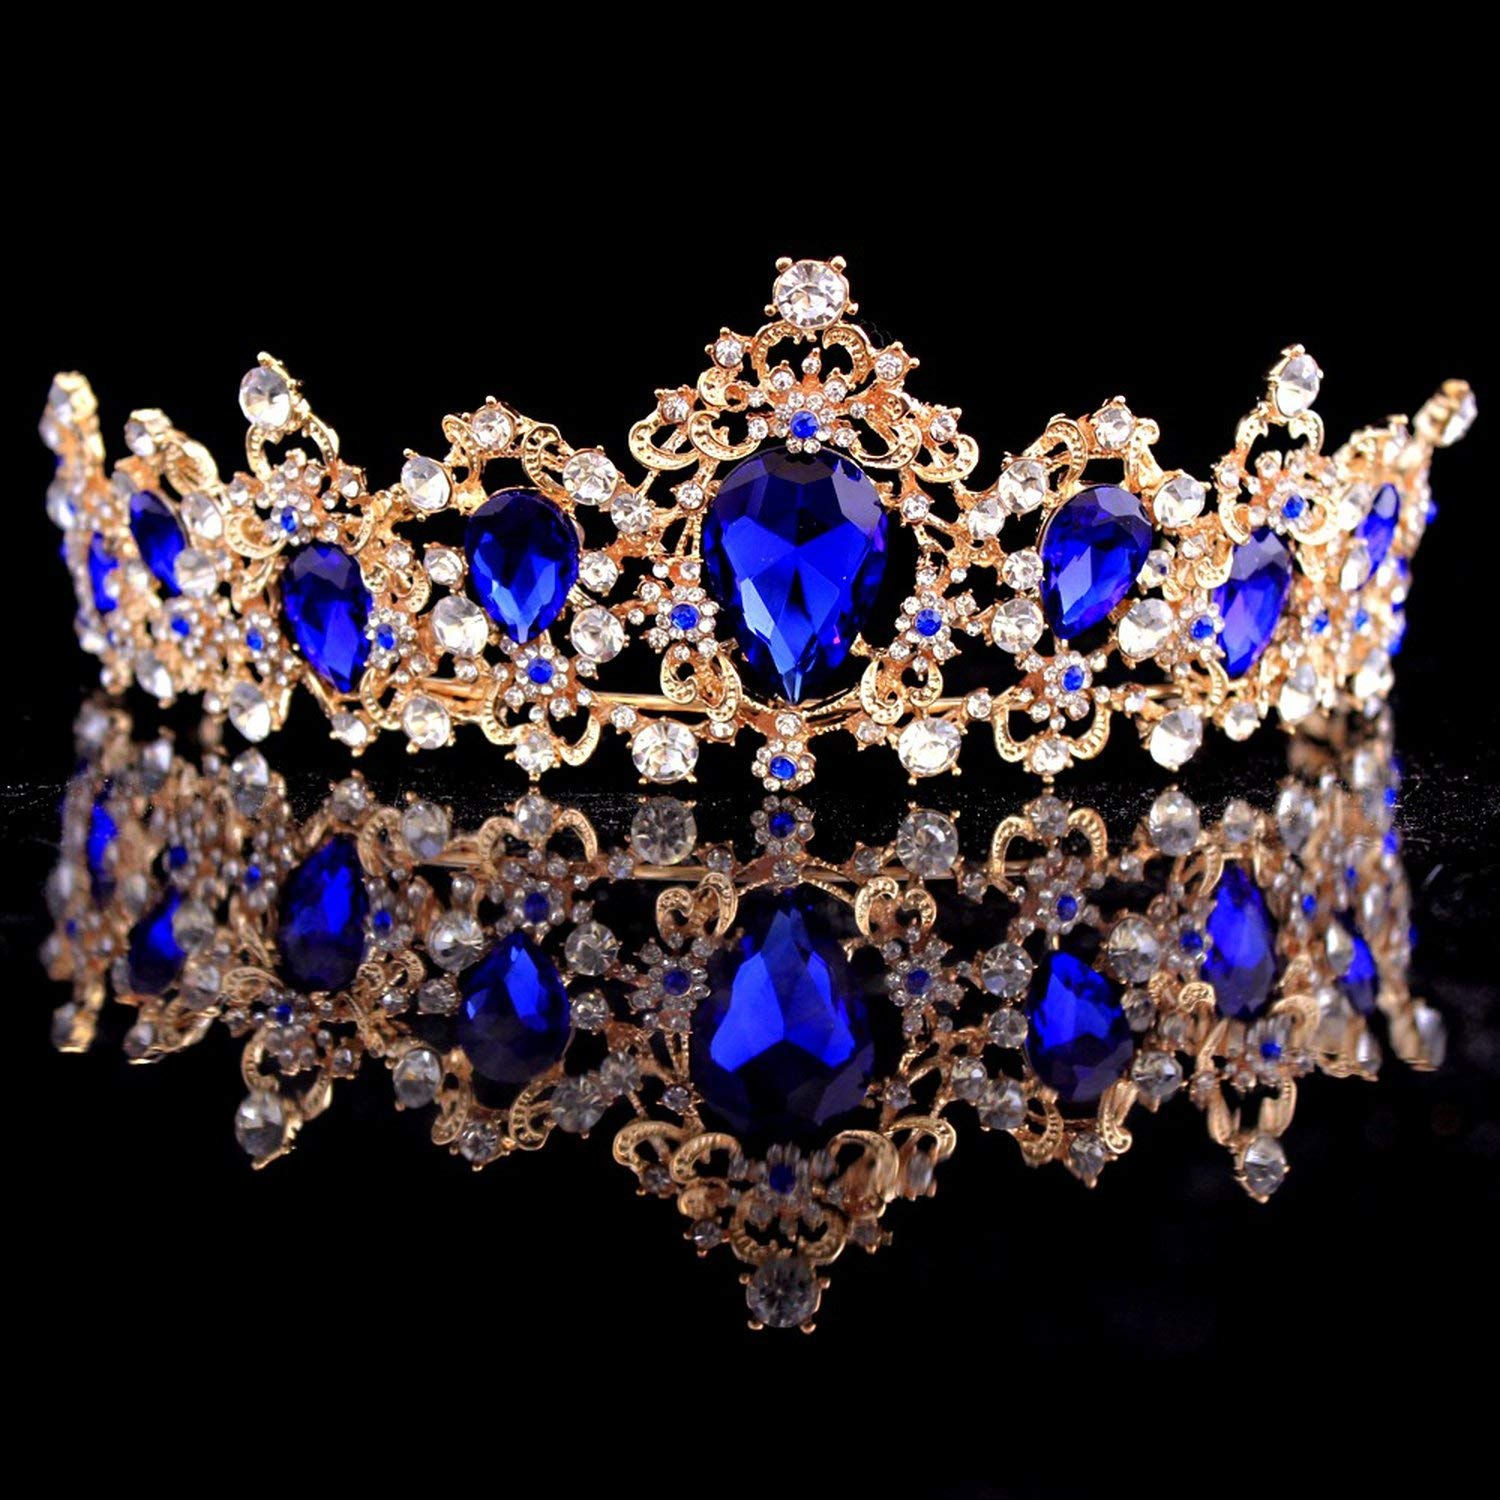 Baroque Crown Red Blue Green Crystal Bridal Tiaras Crown Vintage Gold Hair Accessories Wedding Rhinestone Diadem Pageant Crowns,Silver White